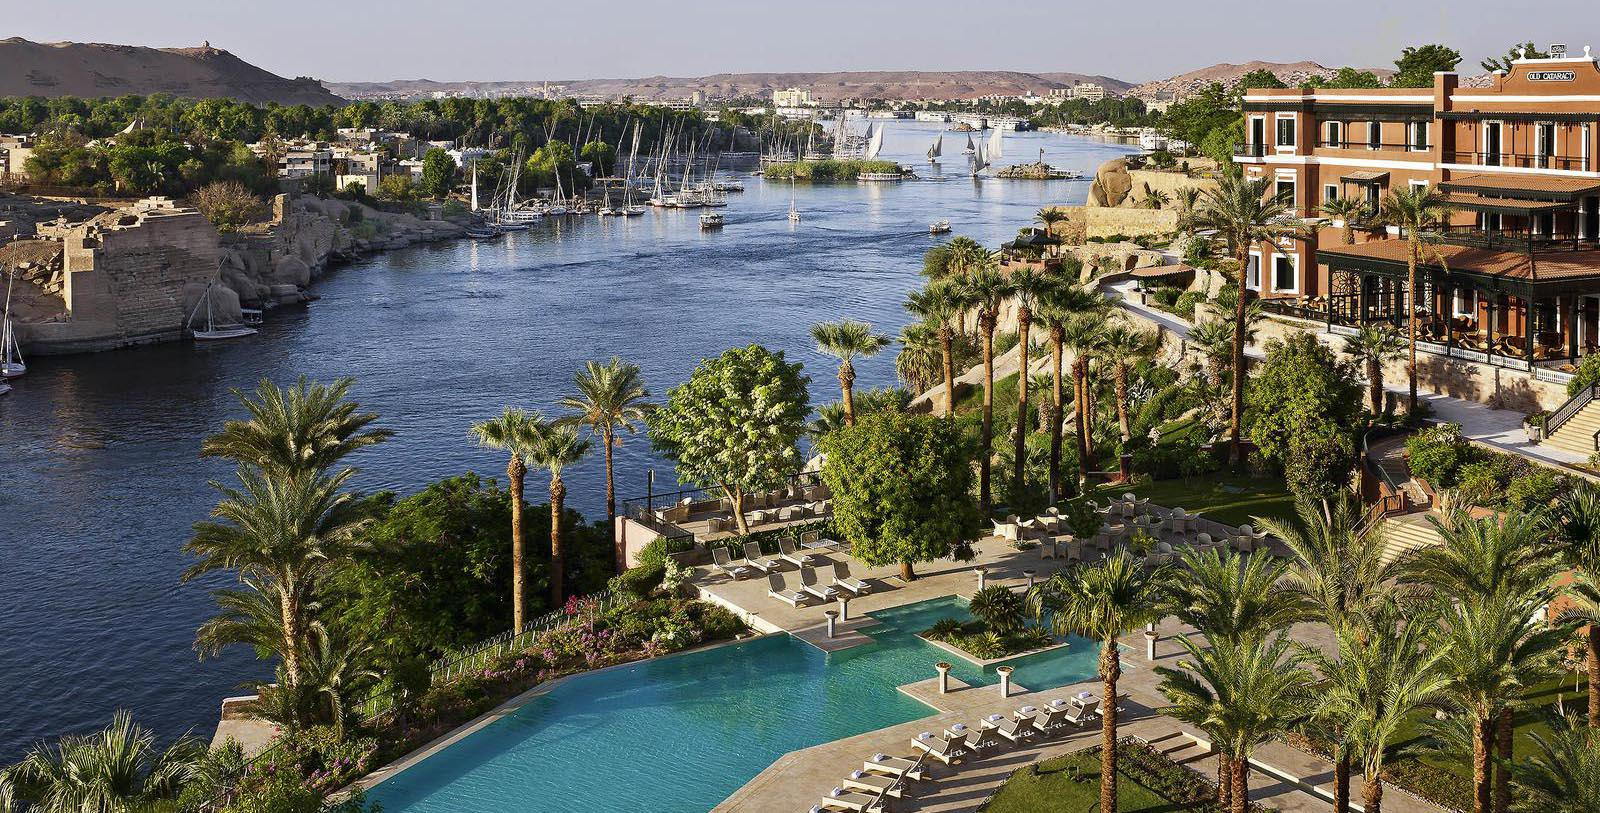 Image of Hotel Exterior Sofitel Legend Old Cataract Aswan, 1899, Member of Historic Hotels Worldwide, in Aswan, Egypt, Special Offers, Discounted Rates, Families, Romantic Escape, Honeymoons, Anniversaries, Reunions